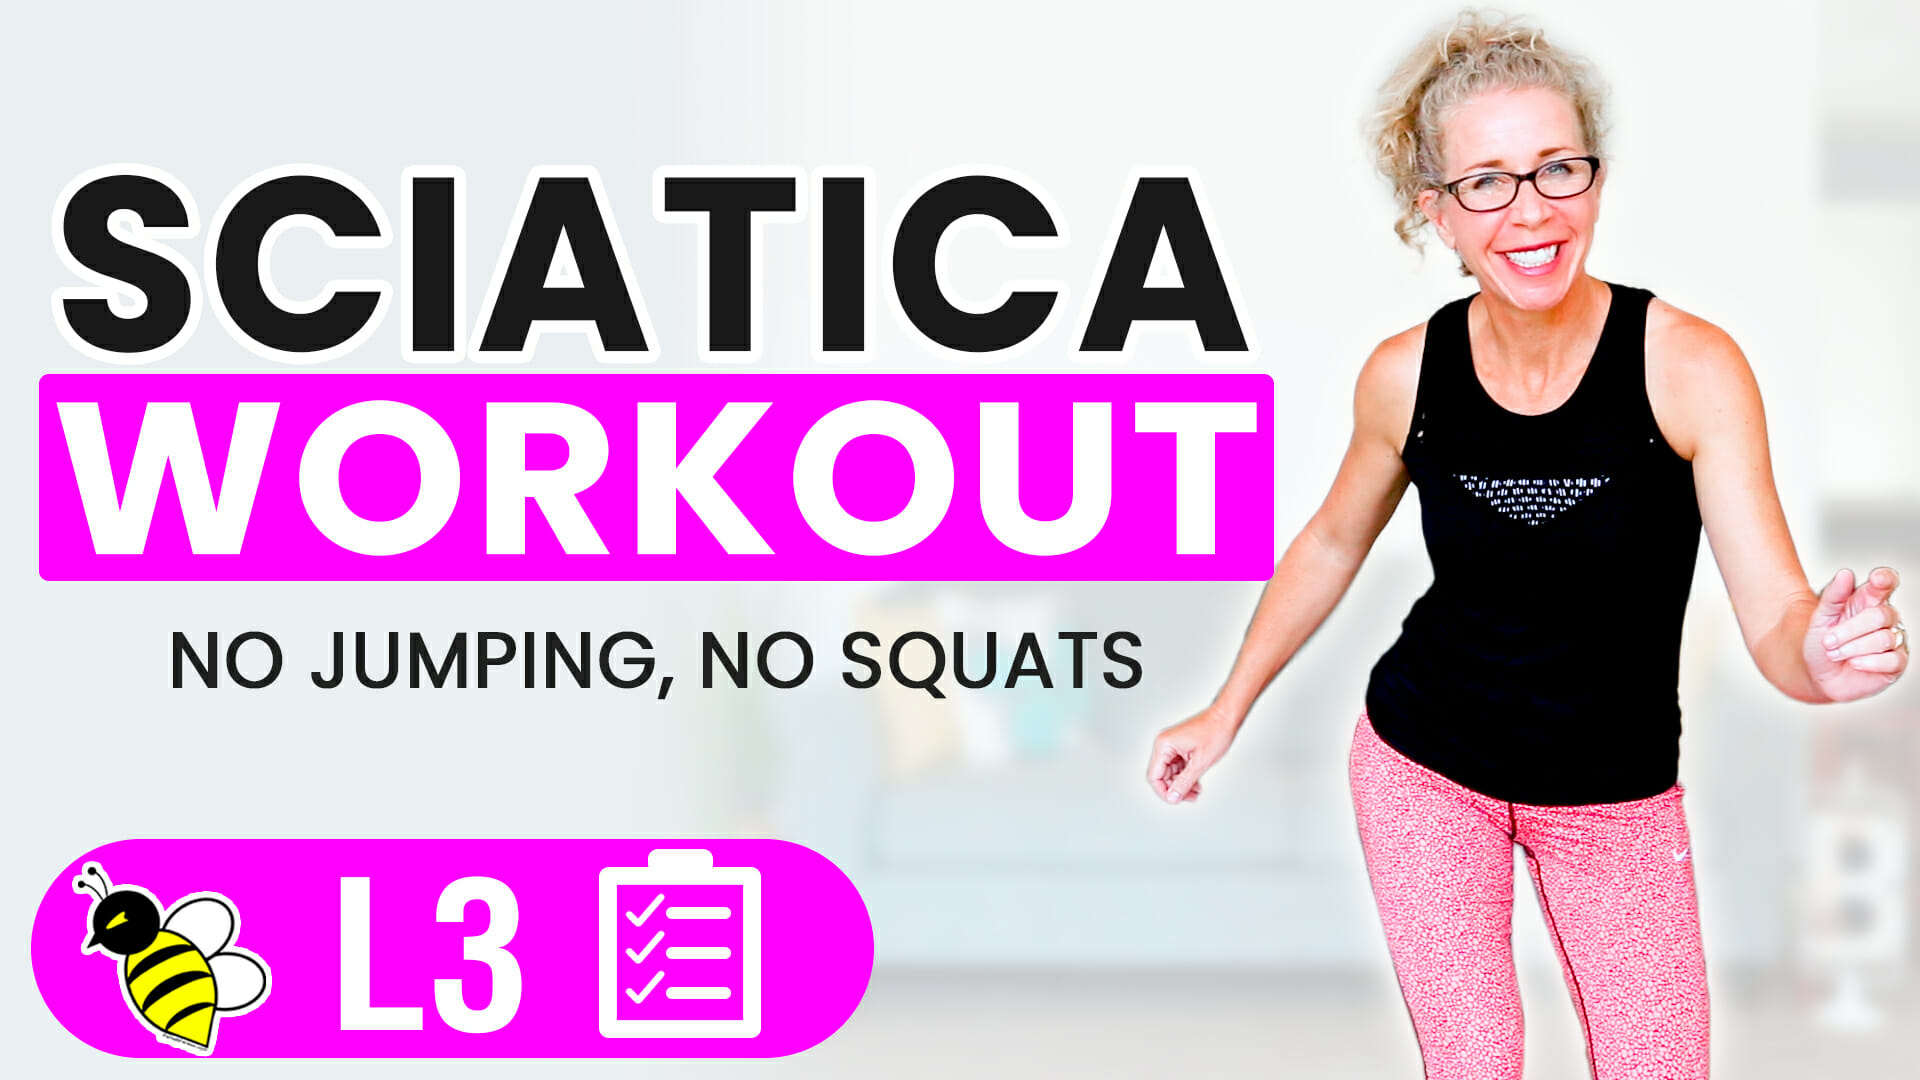 35 Minute Low Impact CARDIO + CORE Workout for Sciatica